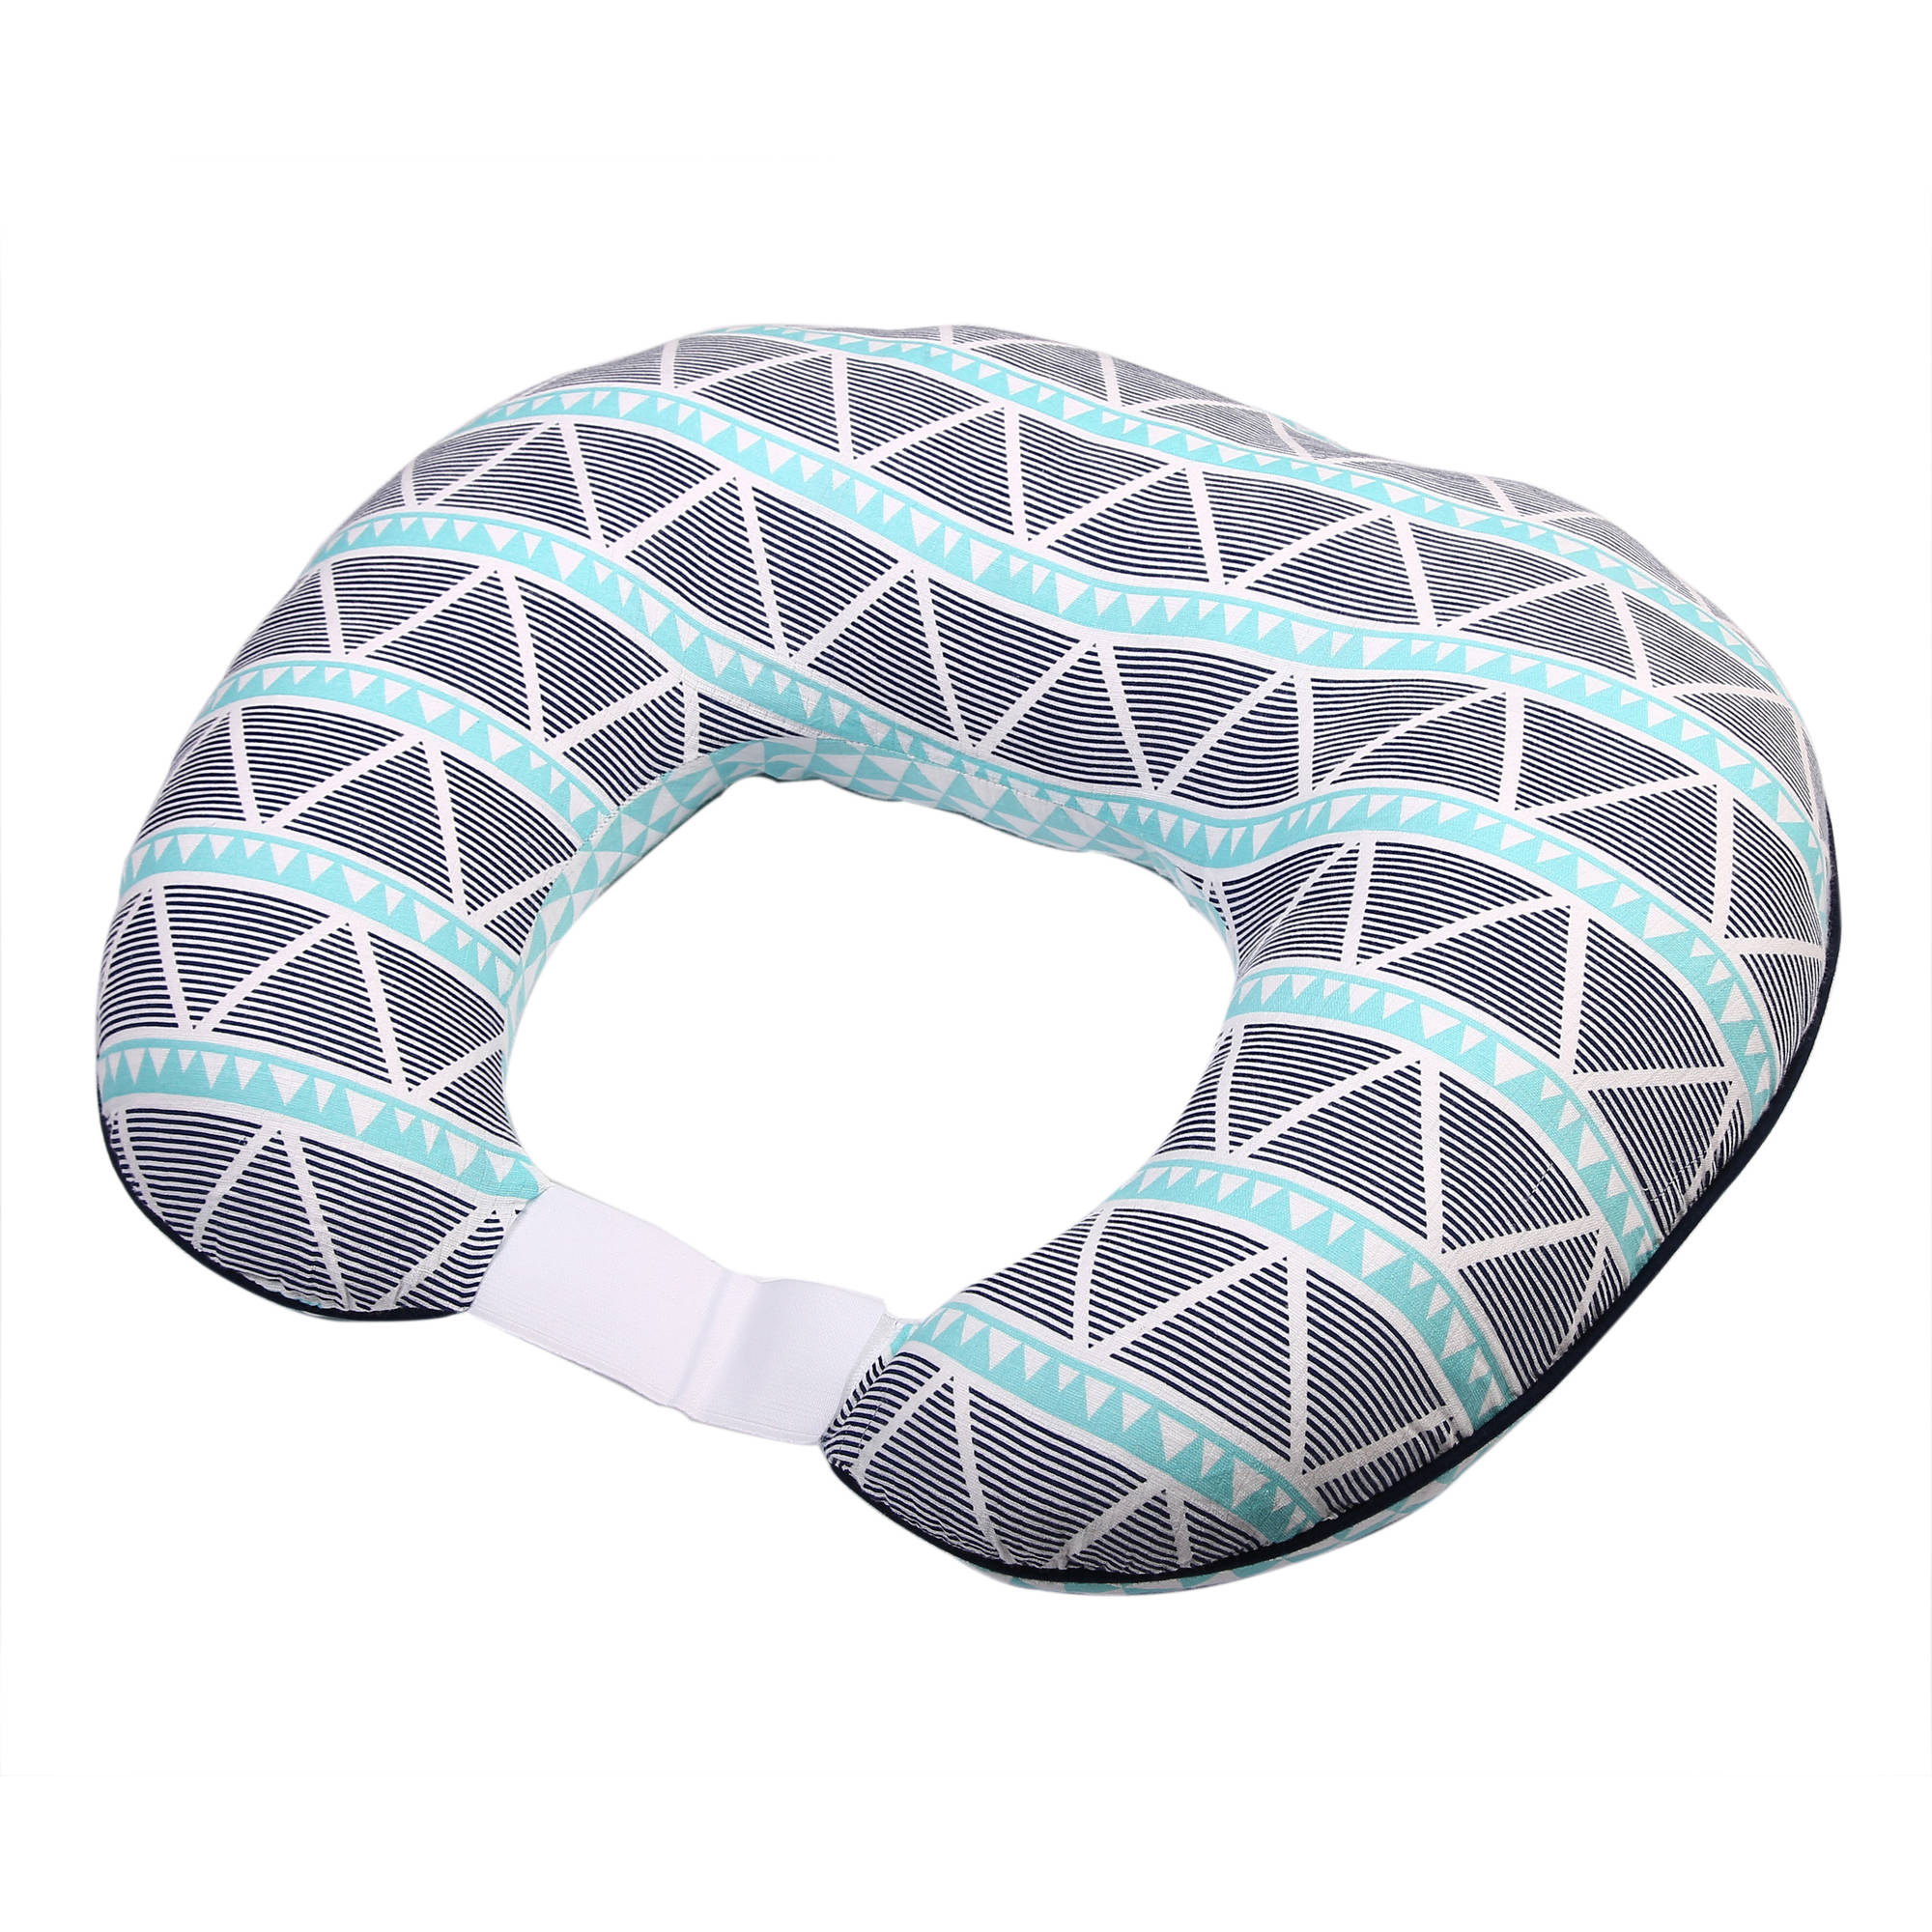 Bacati - Liam Aztec Aqua/Navy Large Triangles Muslin Nursing Pillow Cover fits perfectly only Bacati - Hugster Nursing Pillow